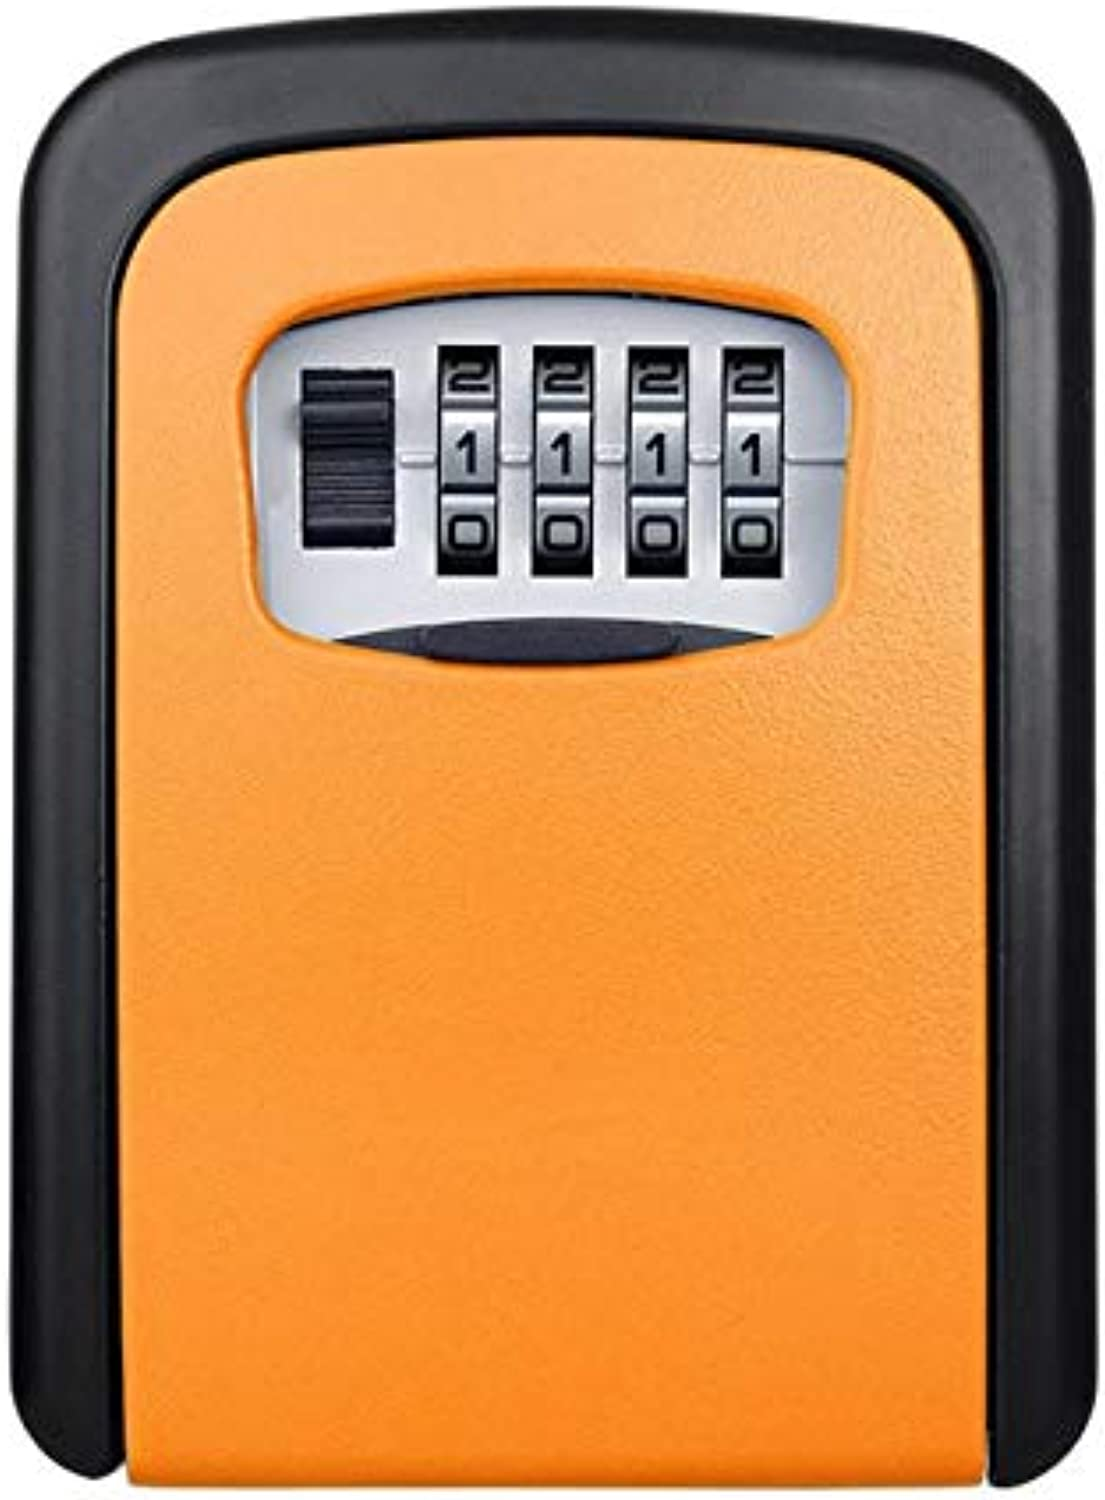 Wall Mounted 4 Digit Combination Key Storage Security Safe Lock Box Combination Storage Security Lock with Screw Hardware  (color  orange)